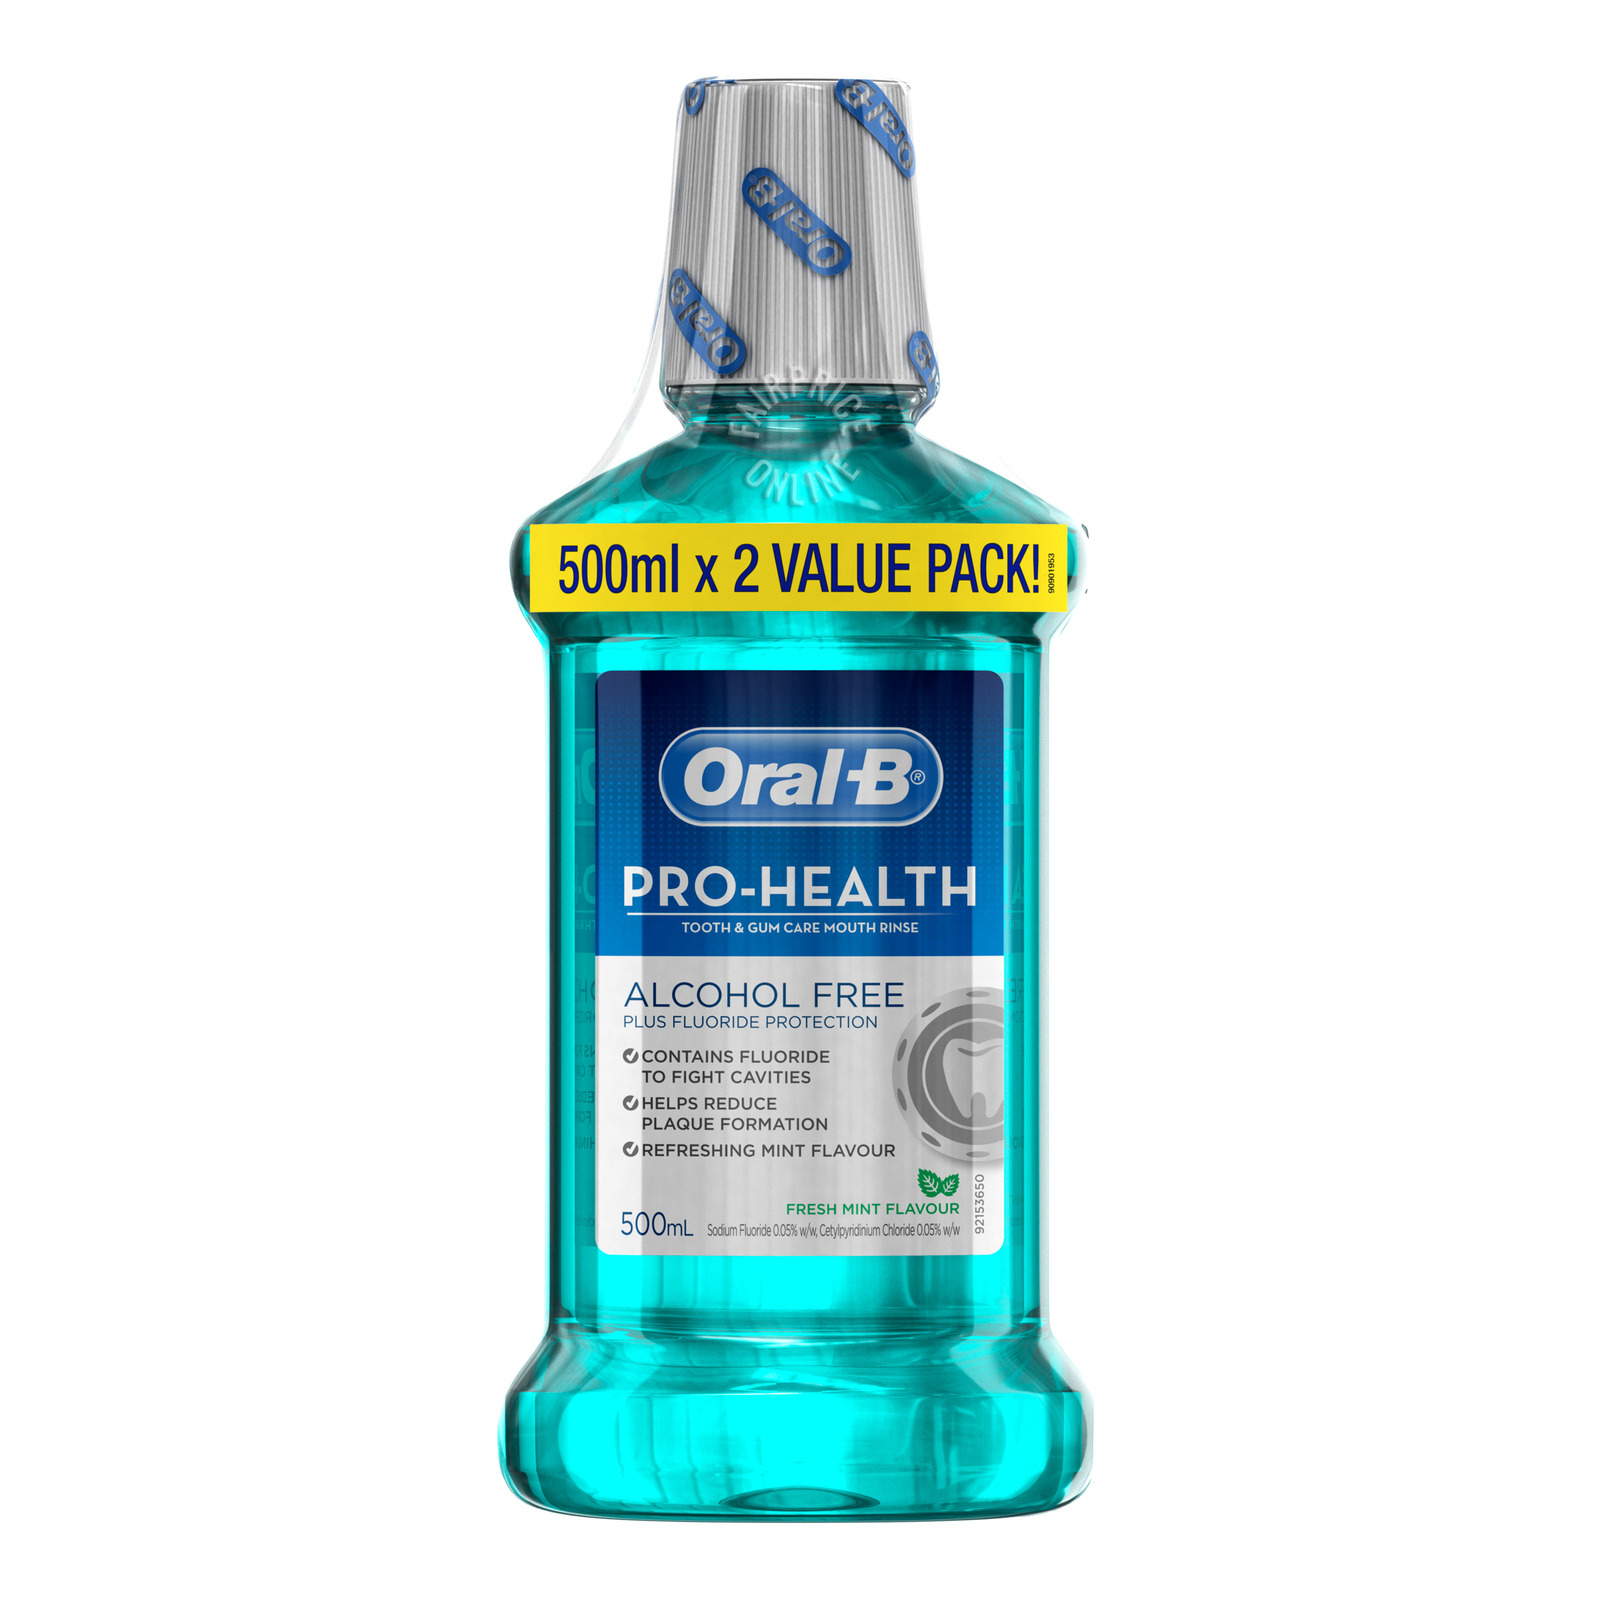 Oral-B Pro-Health Tooth & Gum Care Mouth Rinse - Fresh Mint